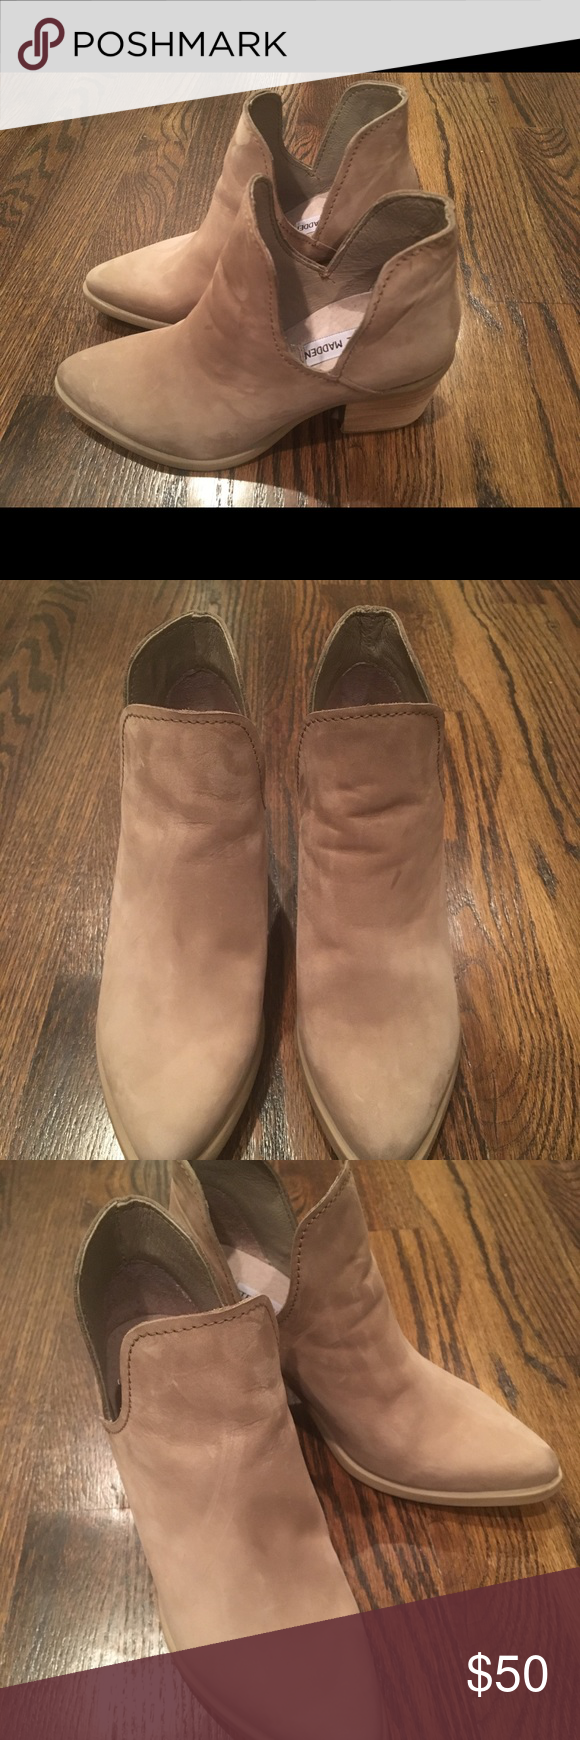 e8734e77cb3 Steve Madden Postal Booties Excellent condition. Worn once. Purchased from Steve  Madden store on